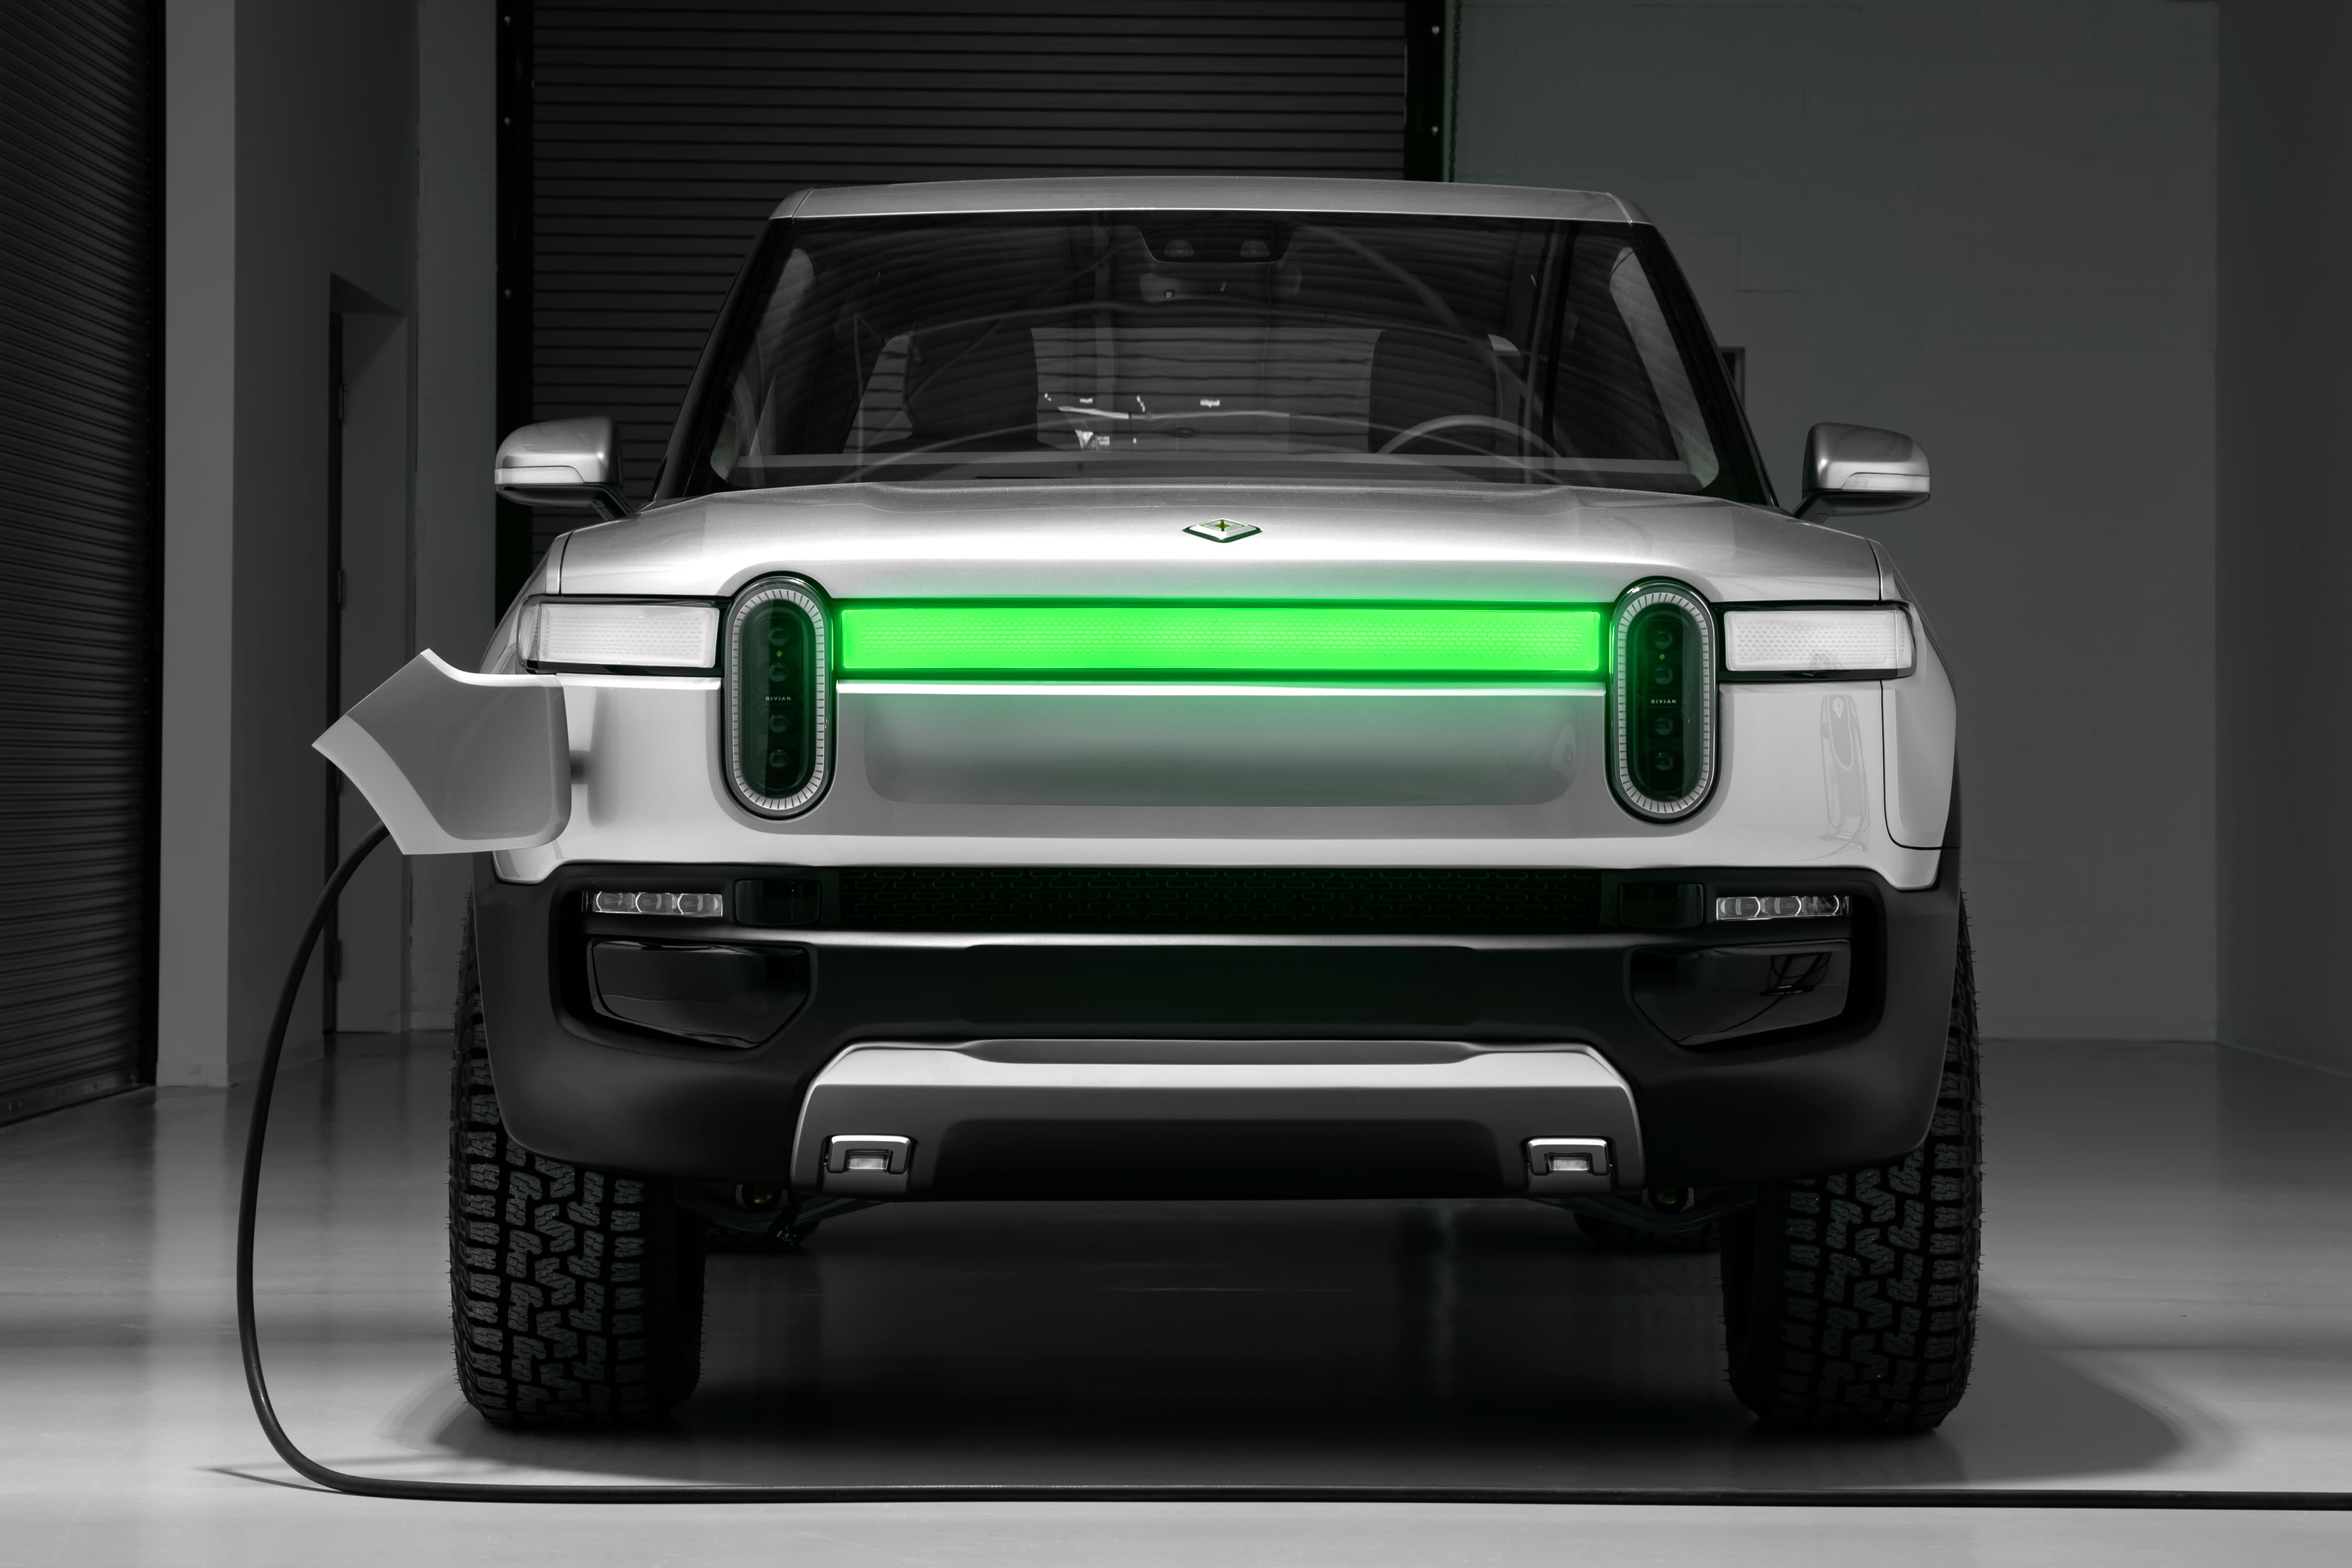 Ford and EV start-up Rivian plan to produce an all-electric vehicle for Lincoln